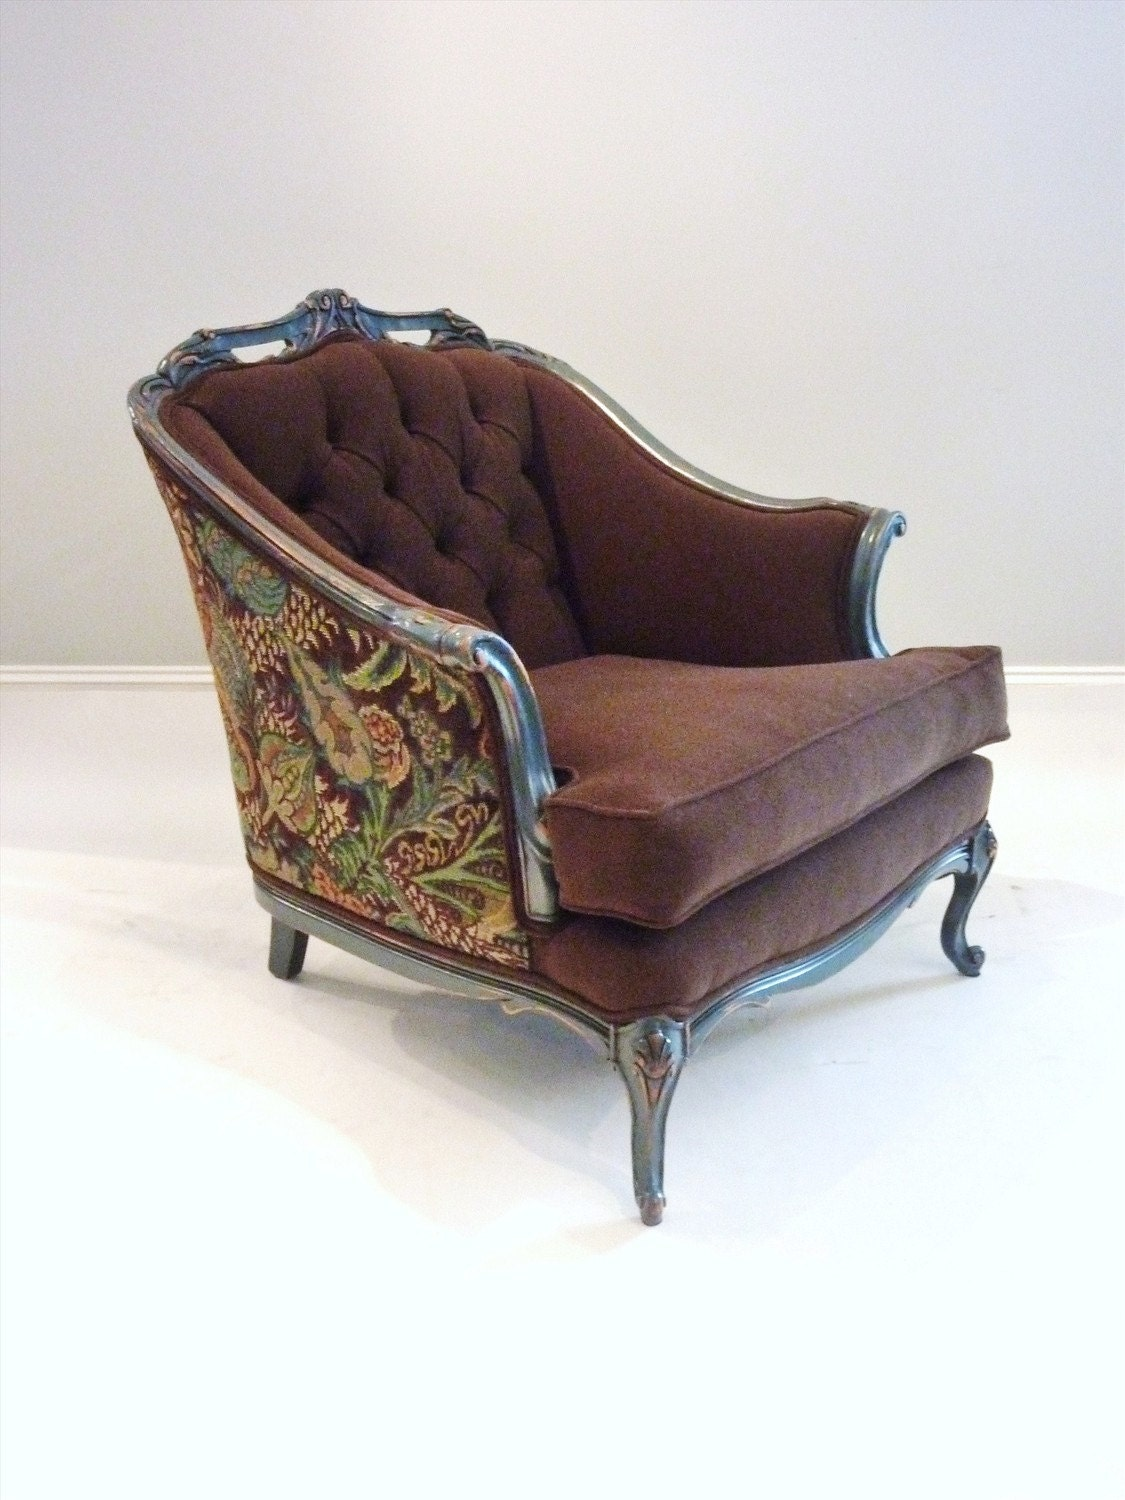 Chocolate And Berries Comfy Reading Chair By Fabulouspieces